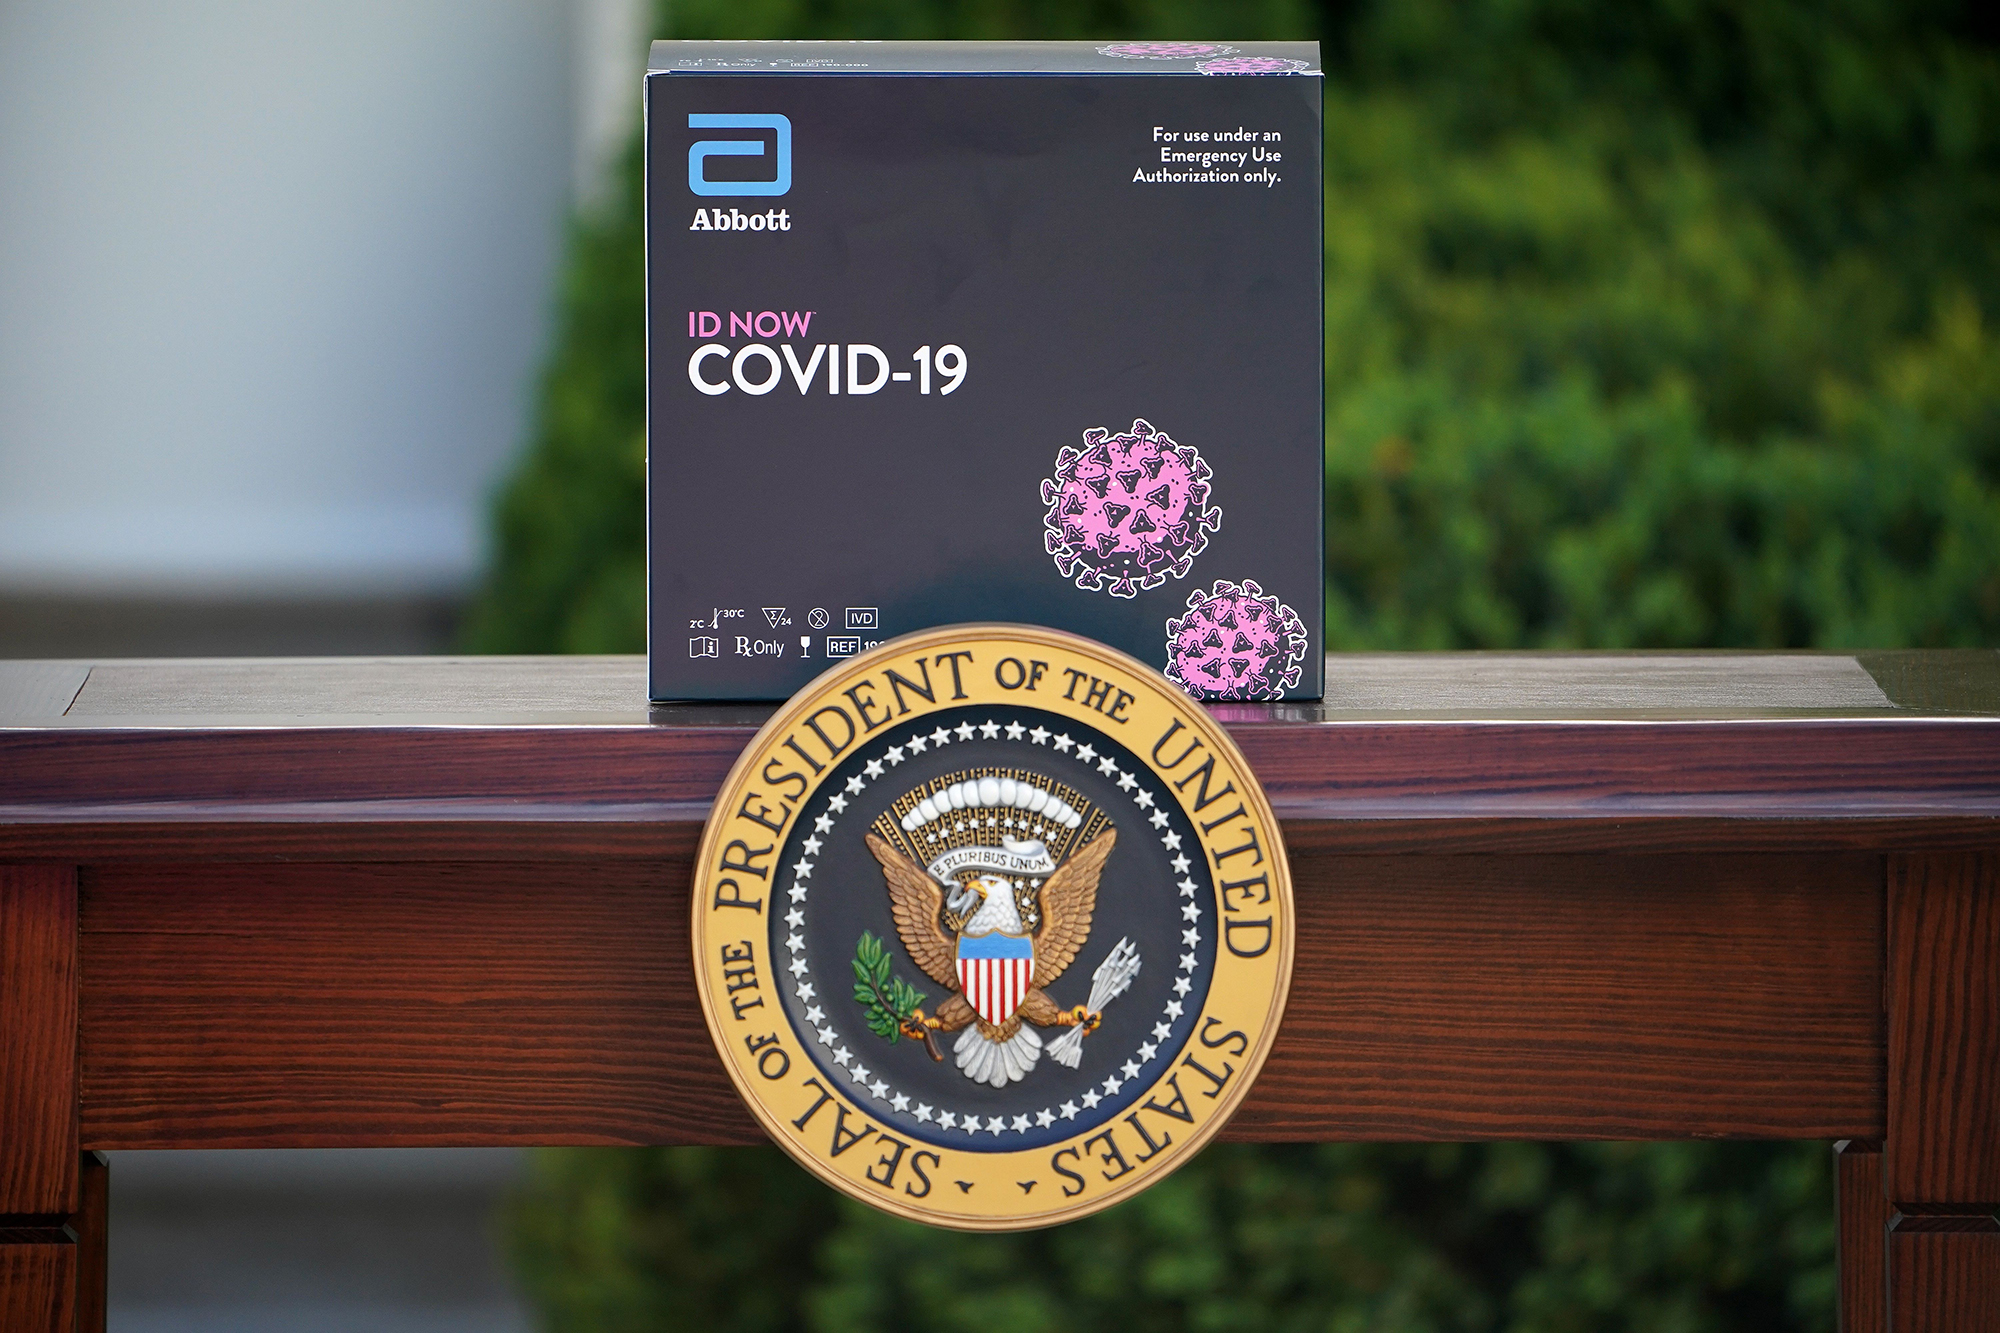 Coronavirus test used by White House has questionable accuracy